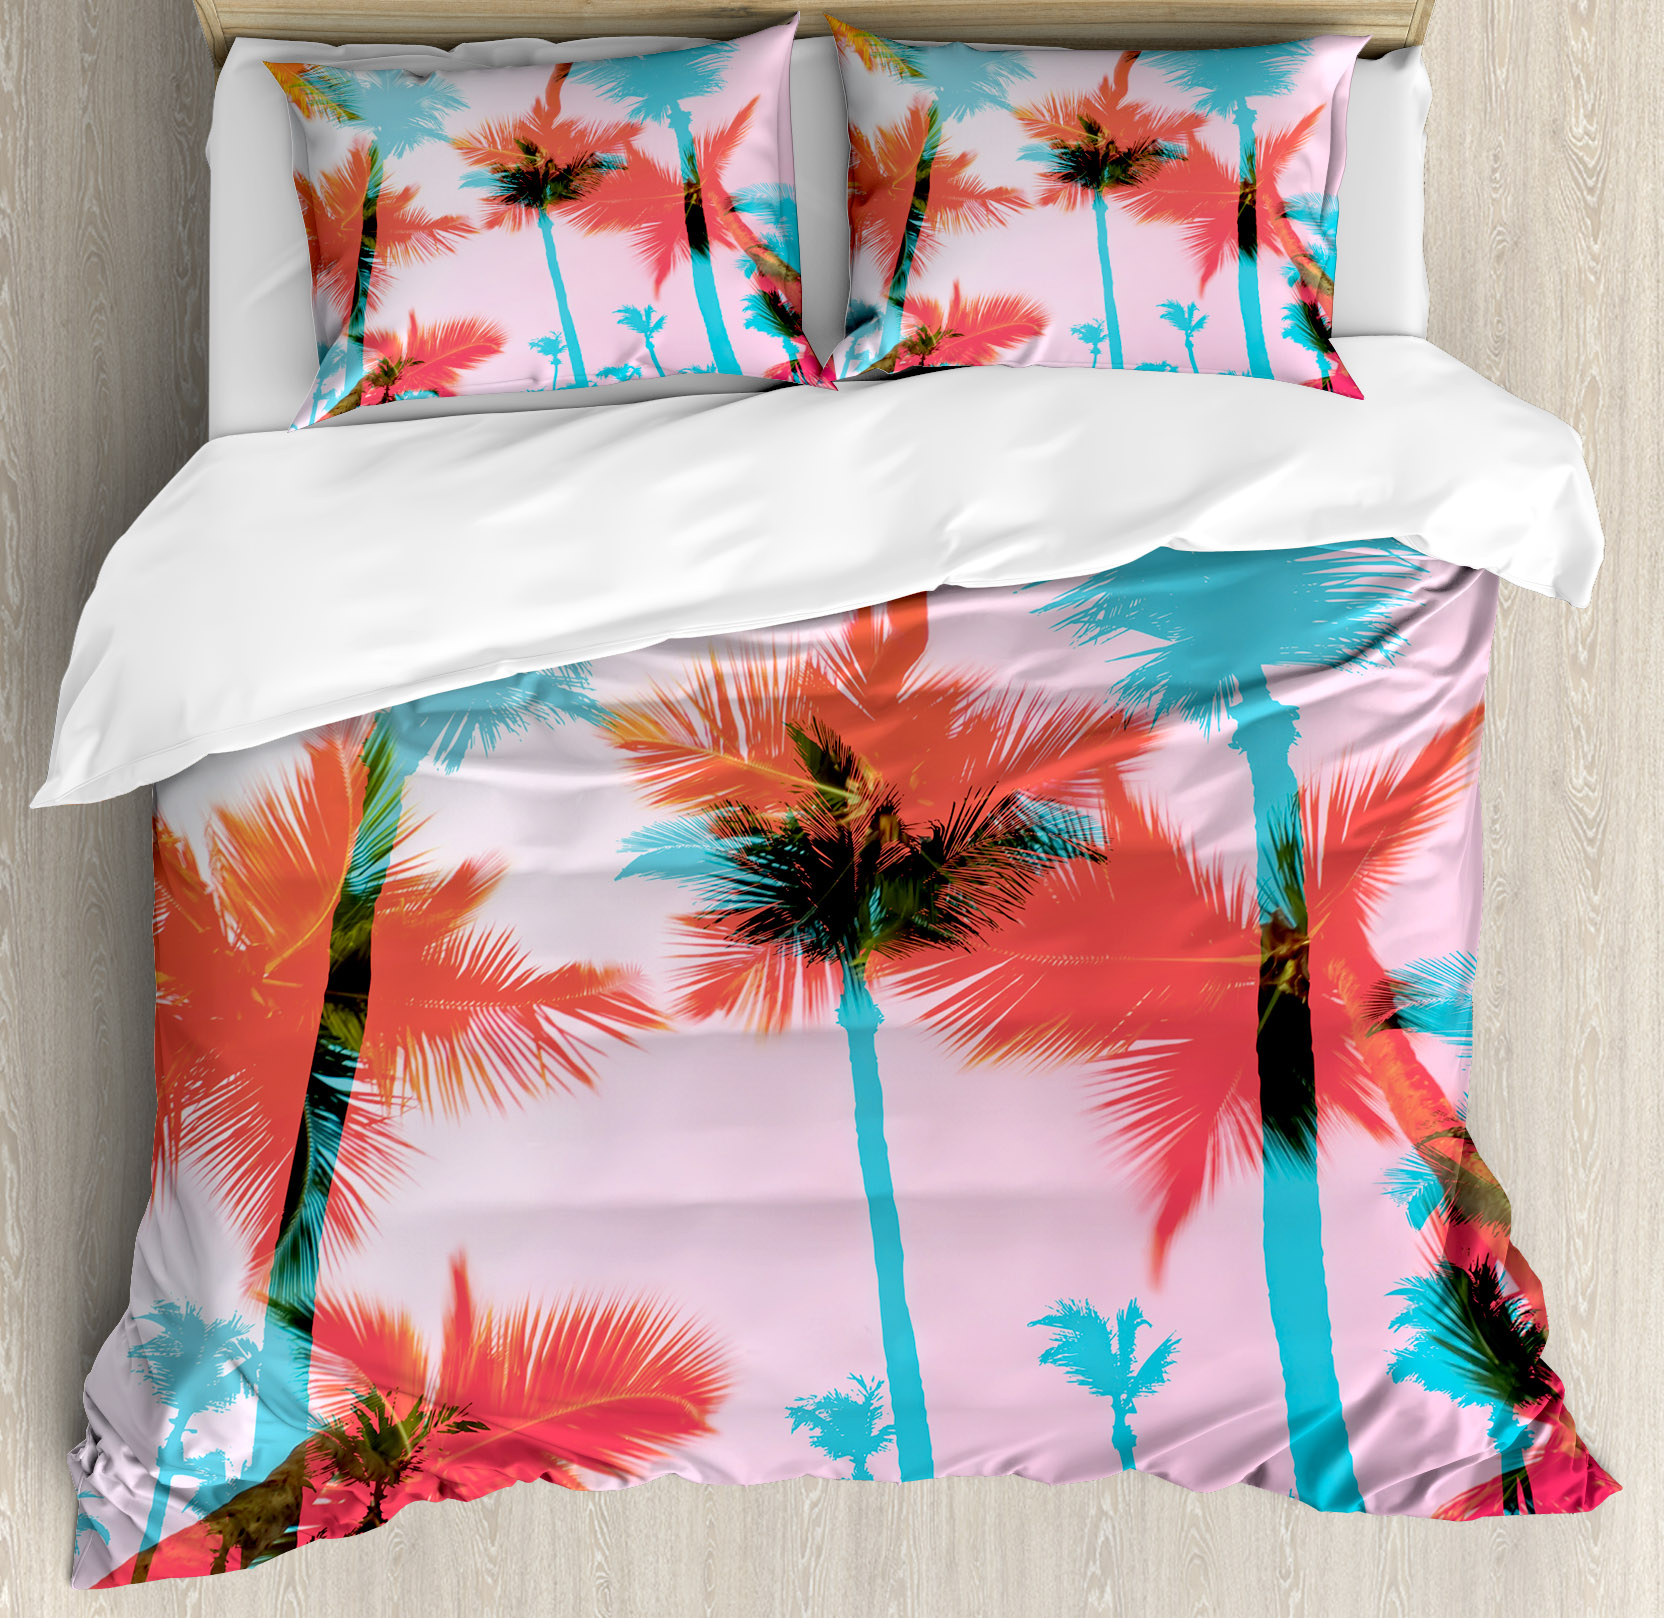 Tropical King Size Duvet Cover Set, Coconut Palm Tree Sil...